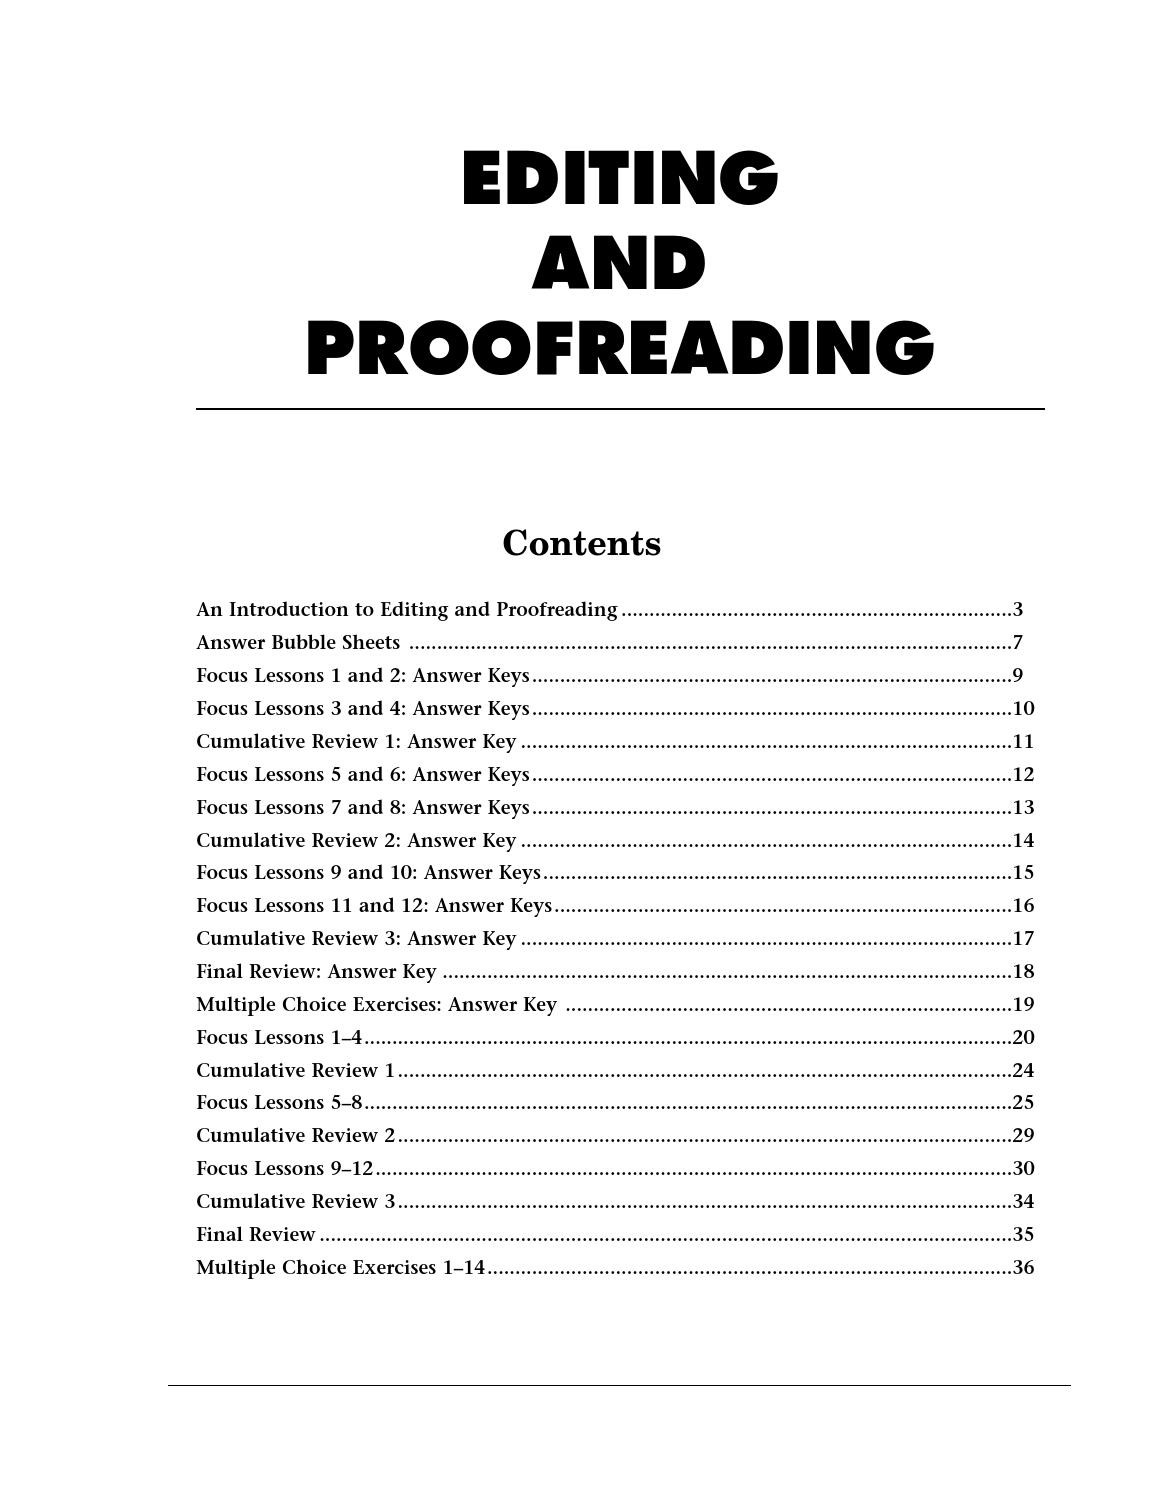 Proofreading Worksheets Middle School Glencoe Proofreading by Belen Fagundez issuu